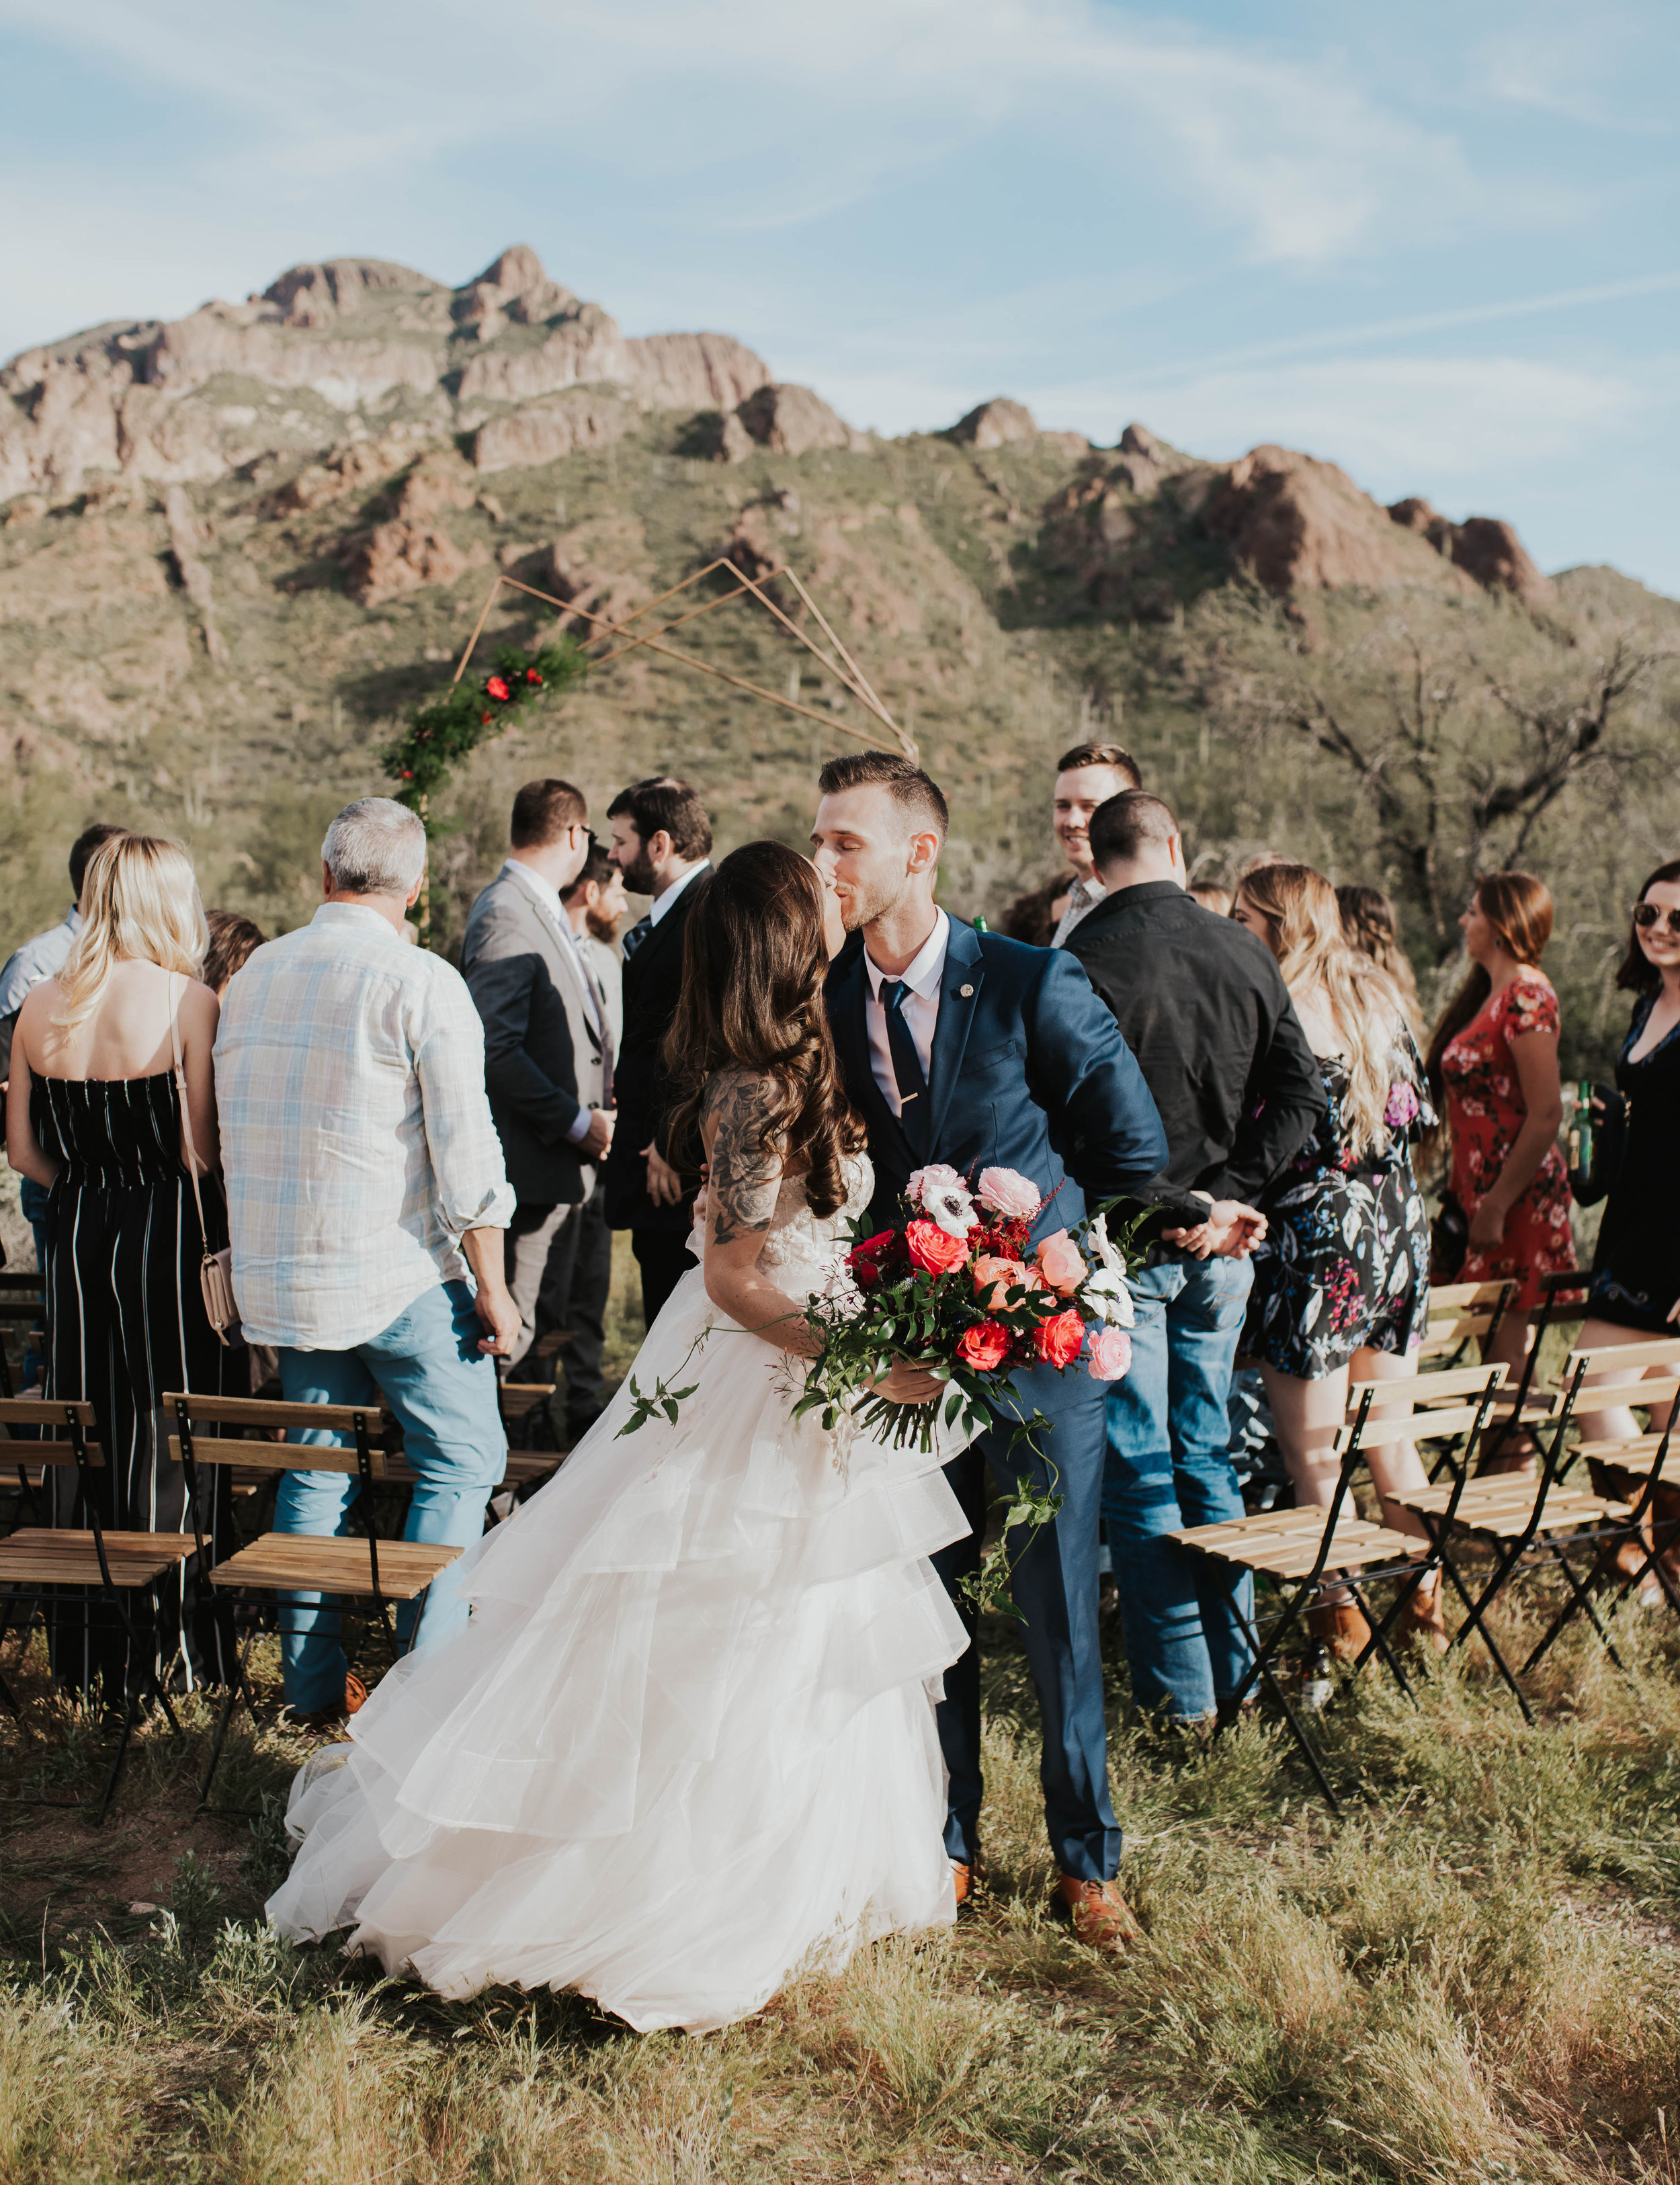 Desert Wedding at Tela Peralta - Arizona florist Phoenix scottsdale Mesa chandler Sedona Flagstaff Prescott - Ceremony in the Mountains